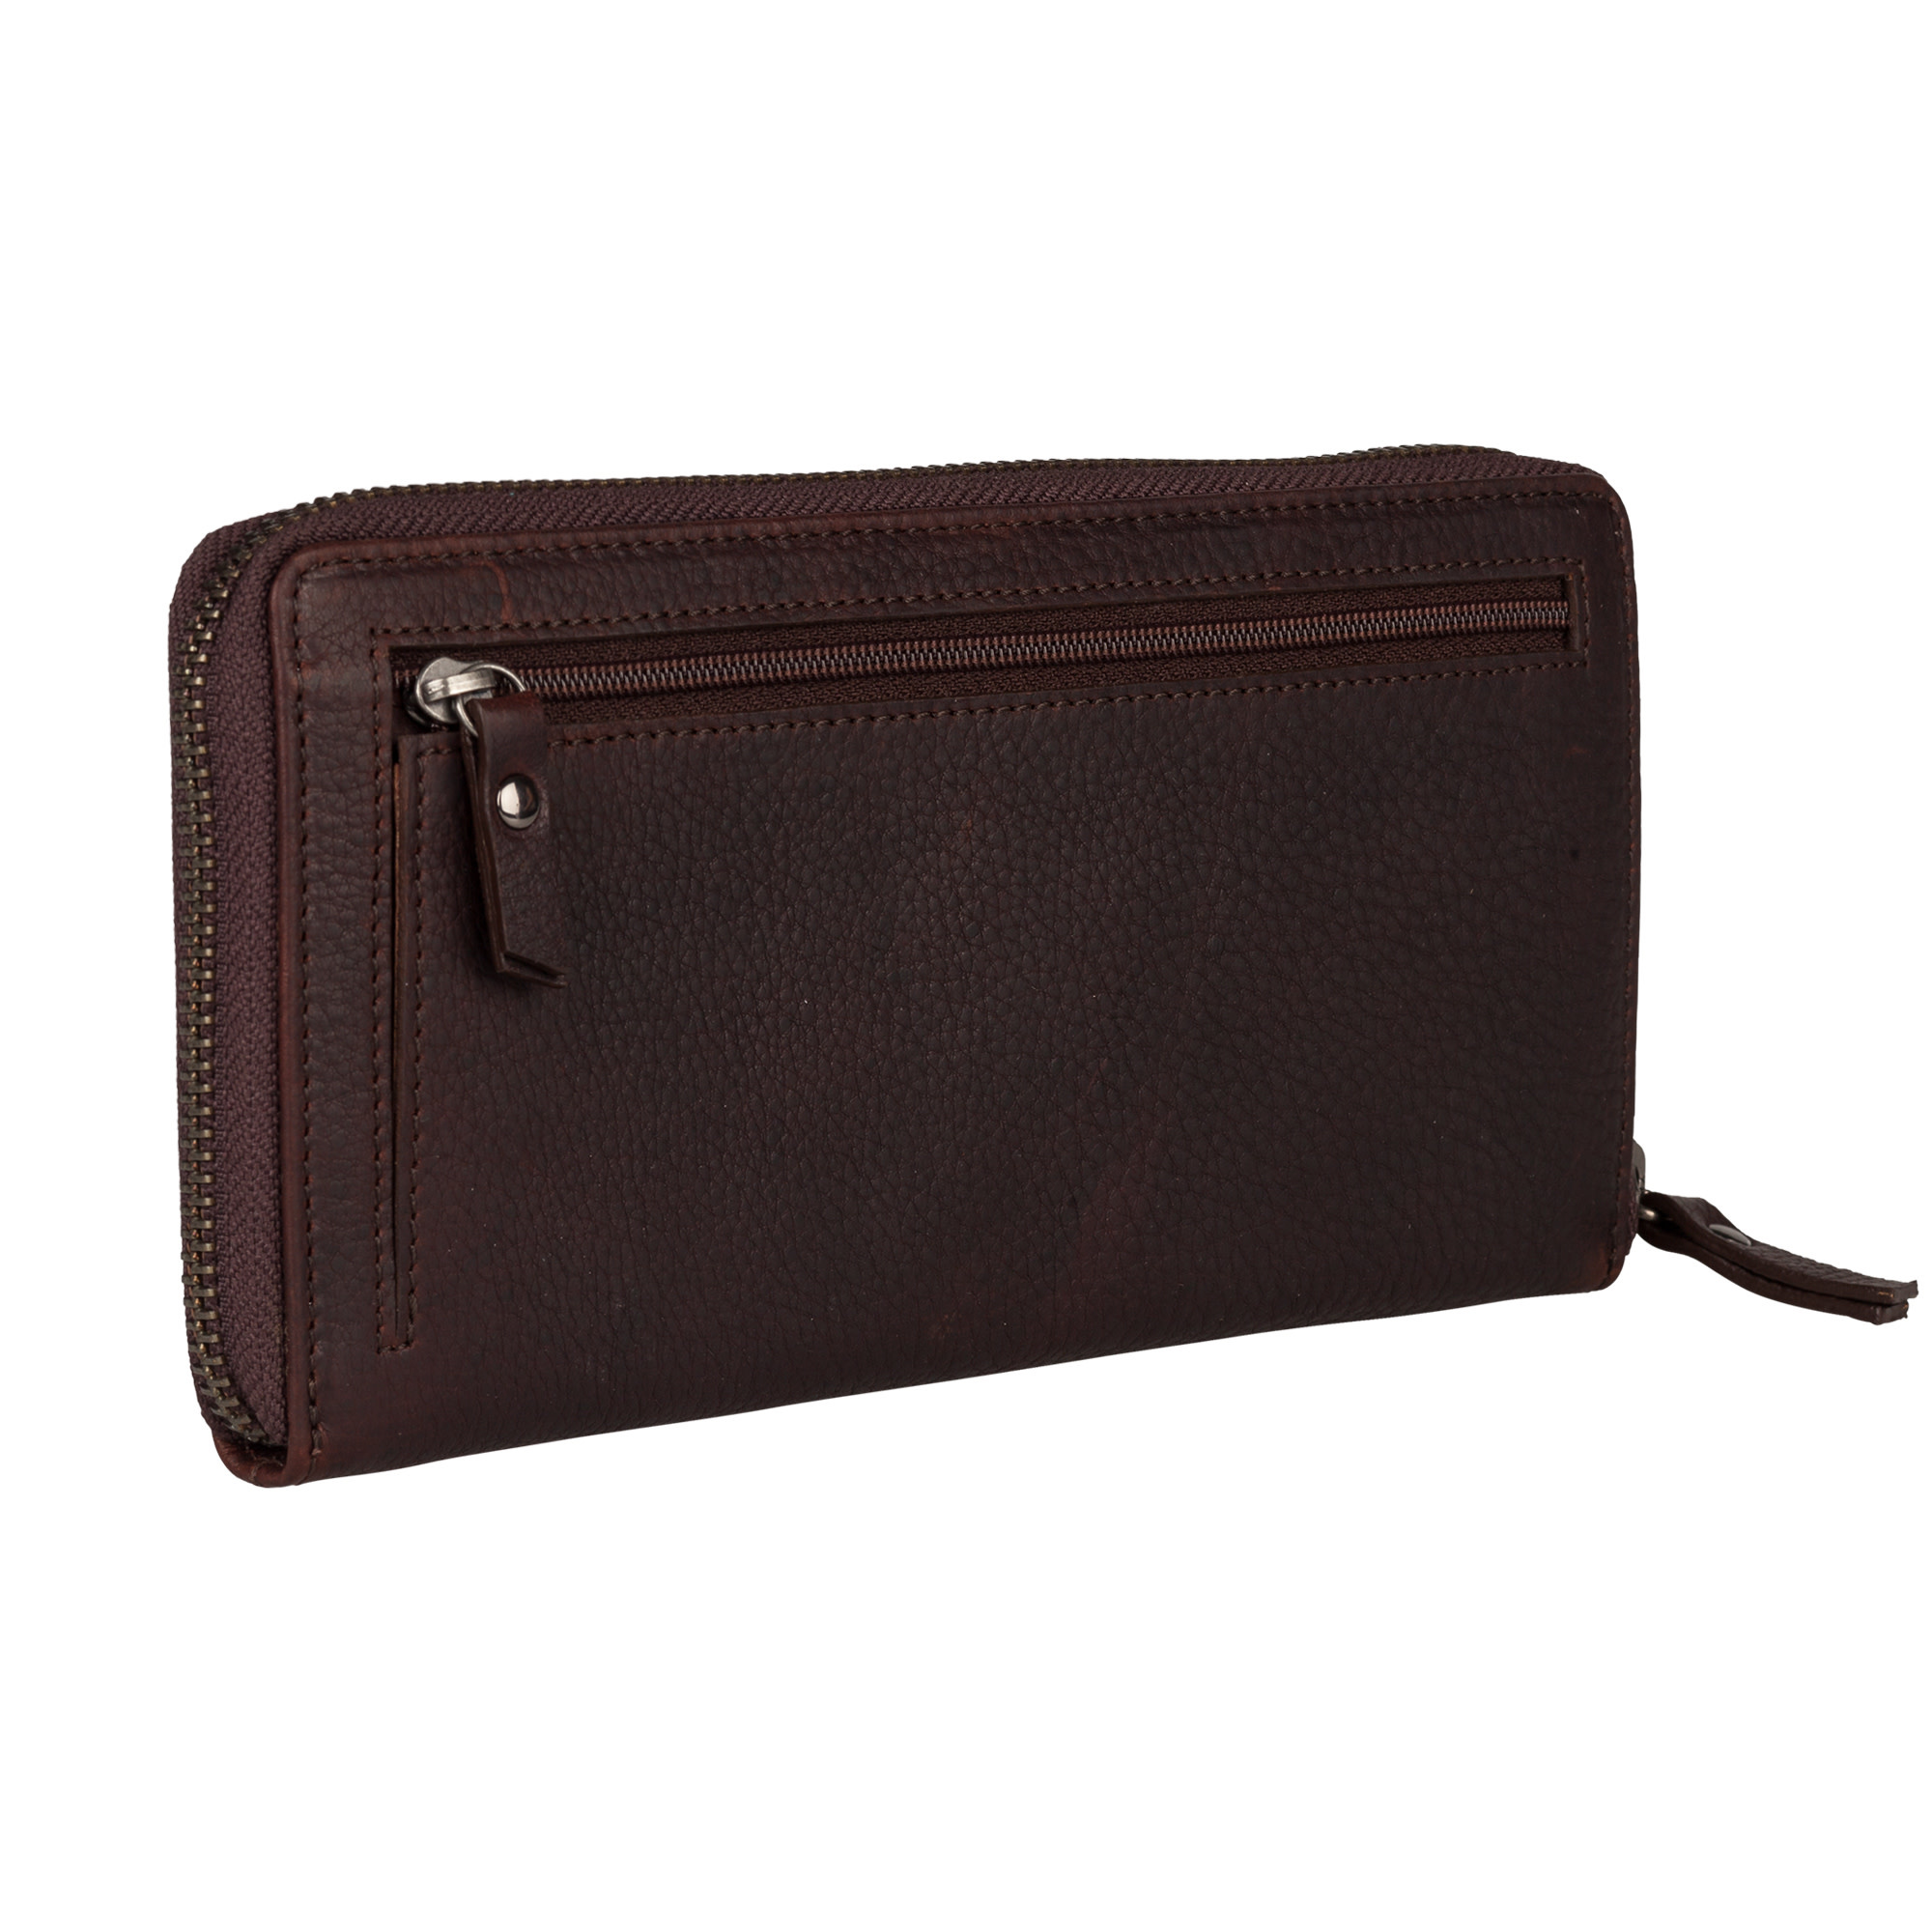 Burkely Antique Avery - Wallet L - Bruin